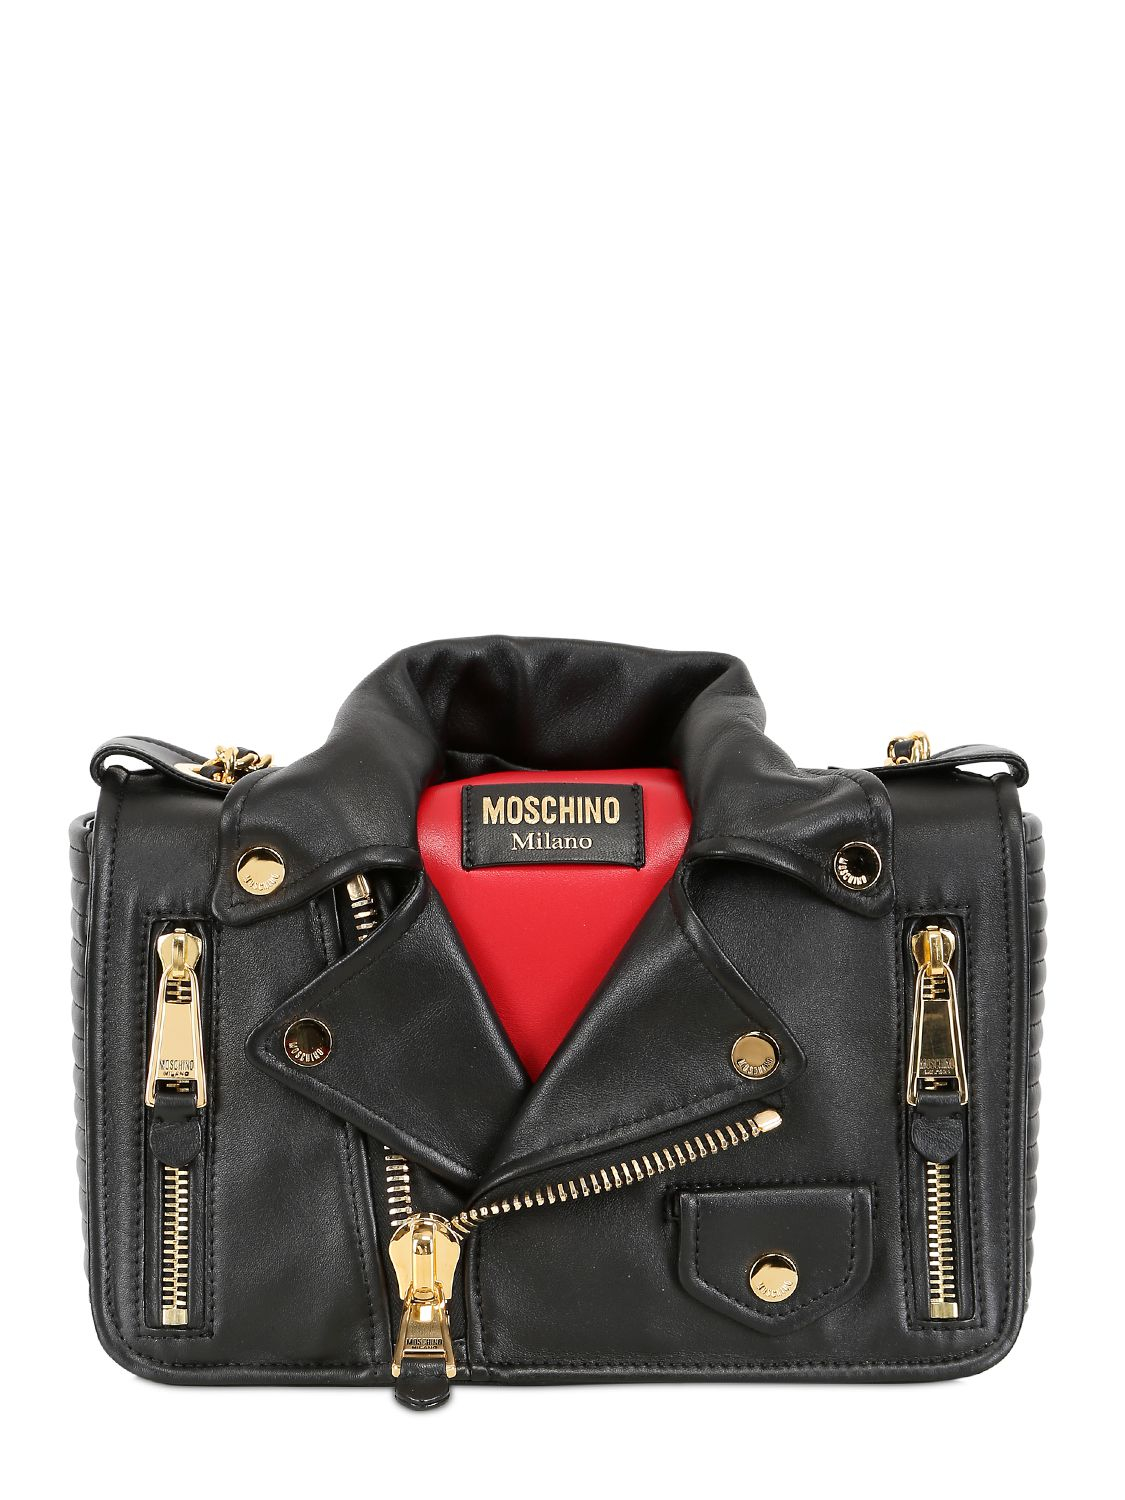 Moschino Biker Jacket Nappa Leather Shoulder Bag In Red Lyst